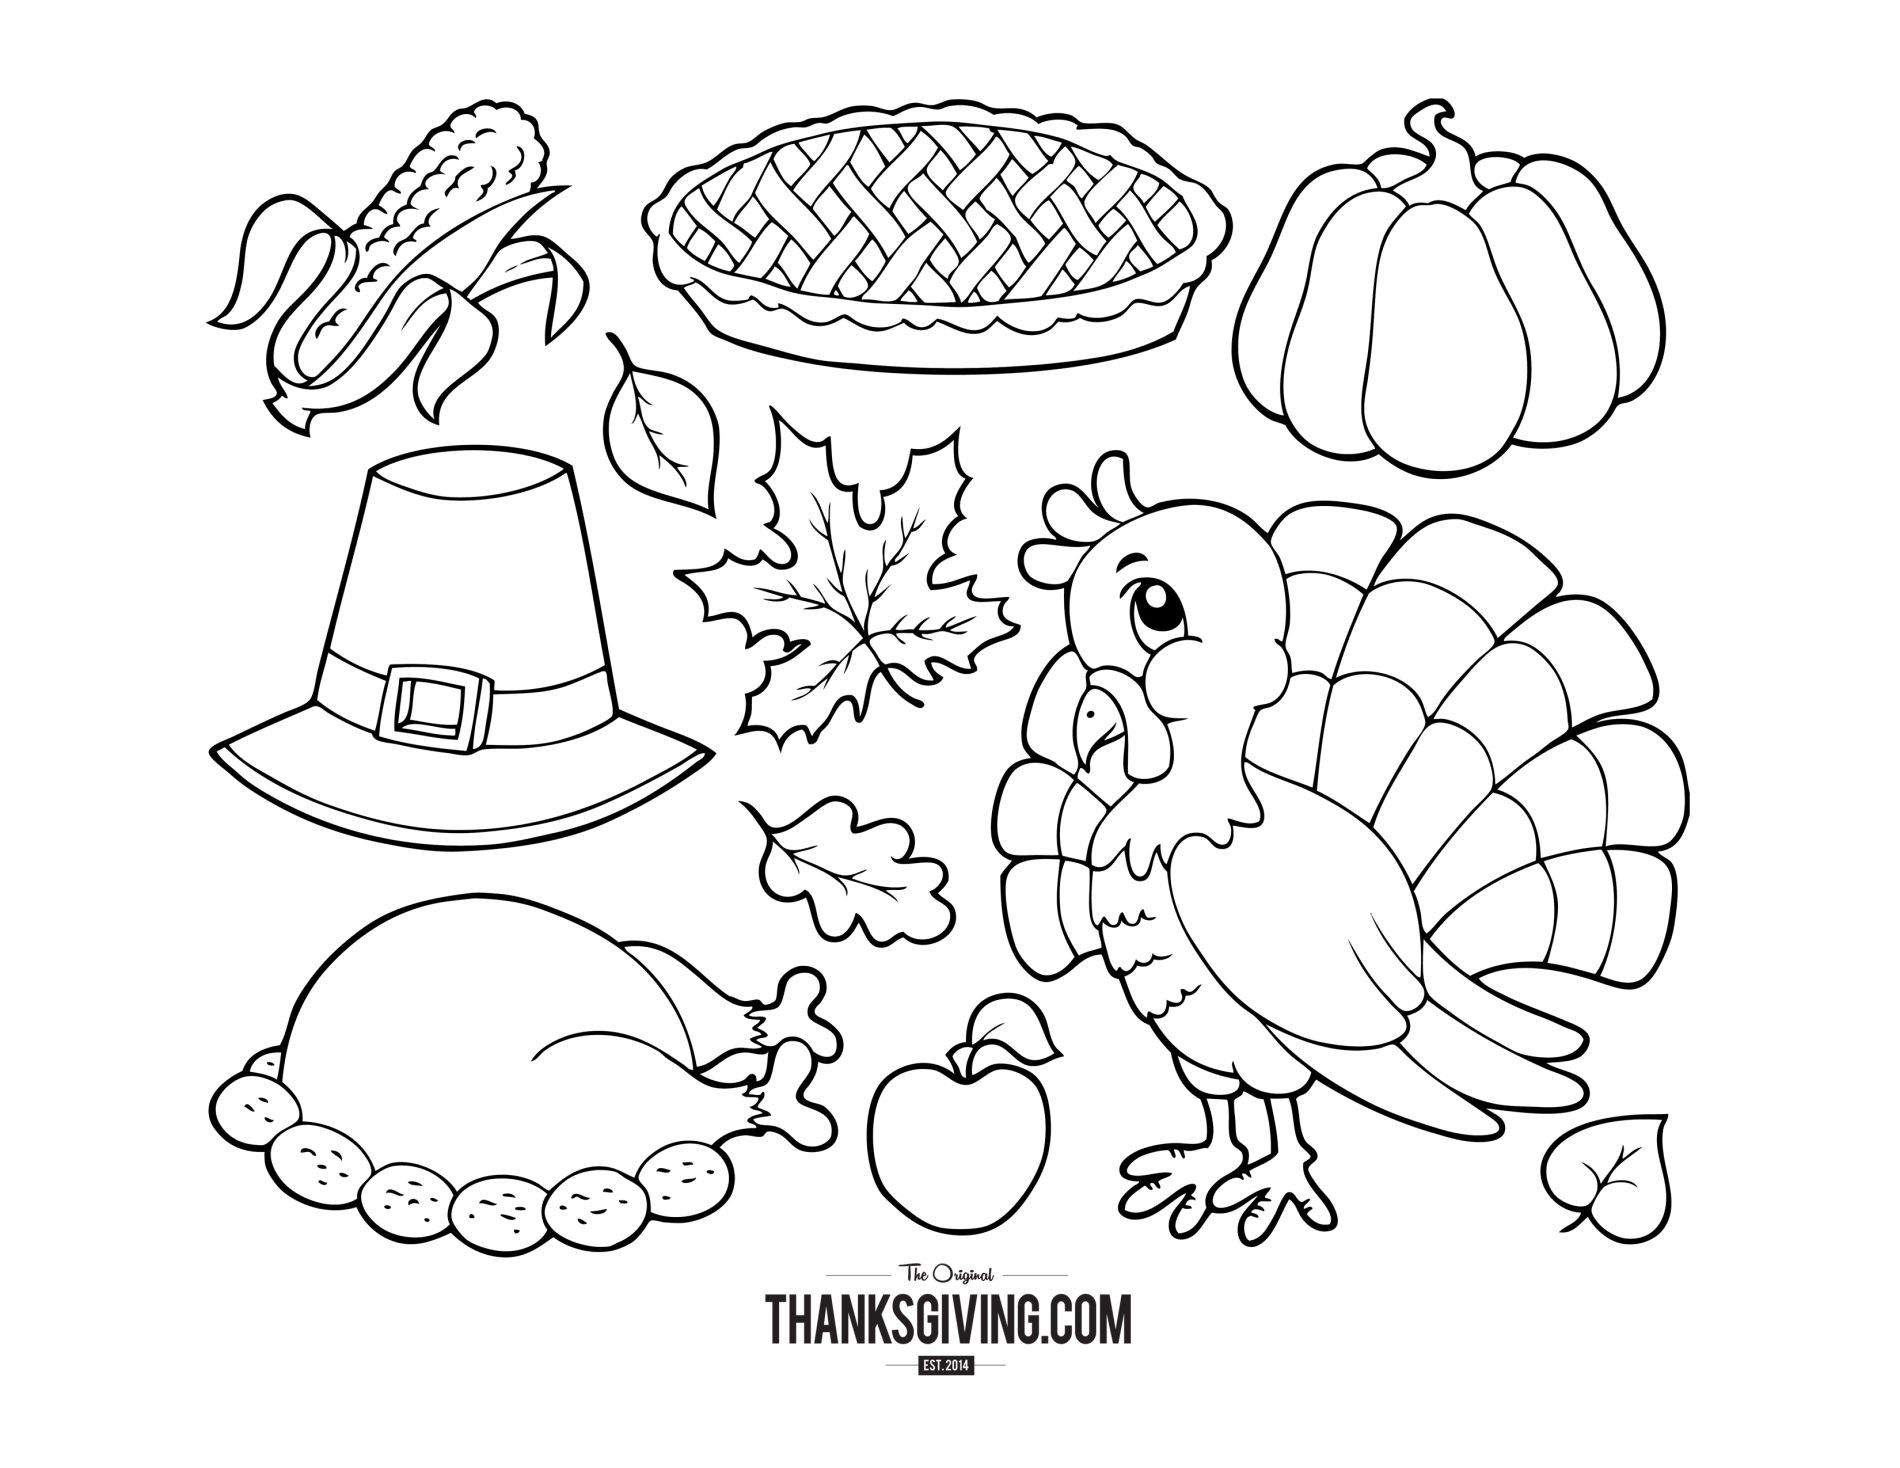 Turkey Dinner Coloring Page